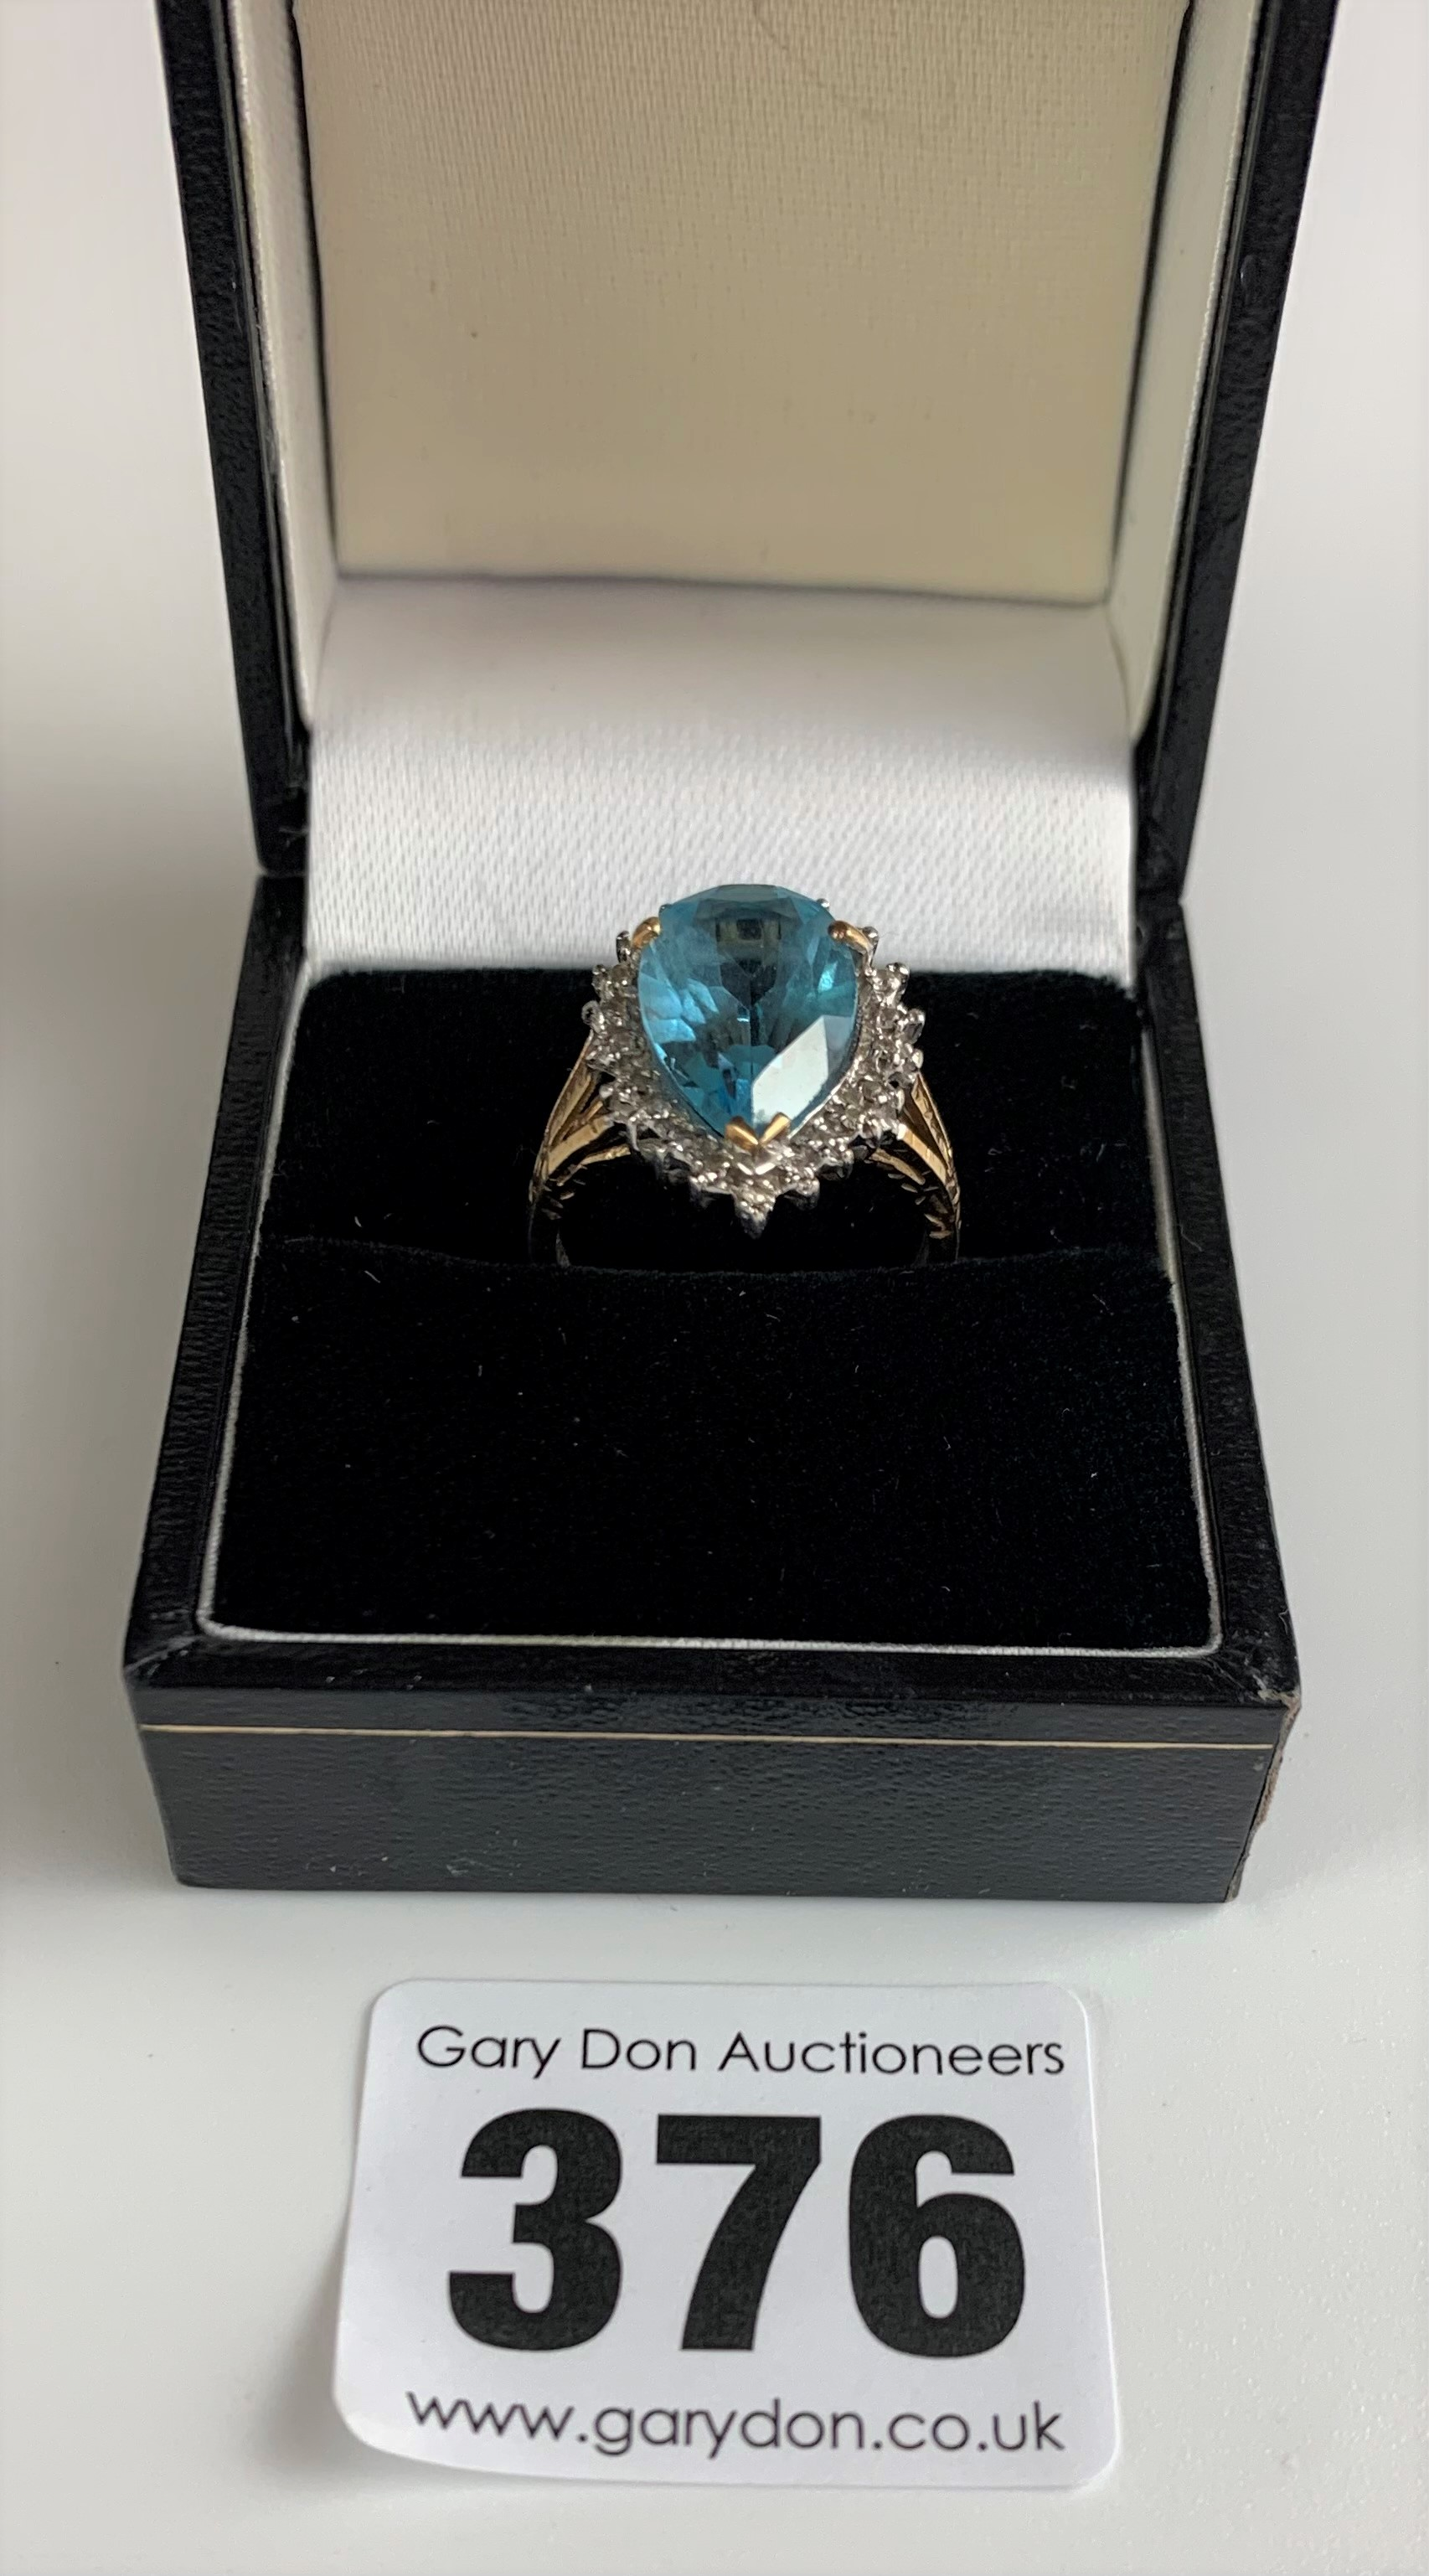 9k gold ring with blue heart shaped stone, size L, w: 3.5 gms - Image 2 of 6